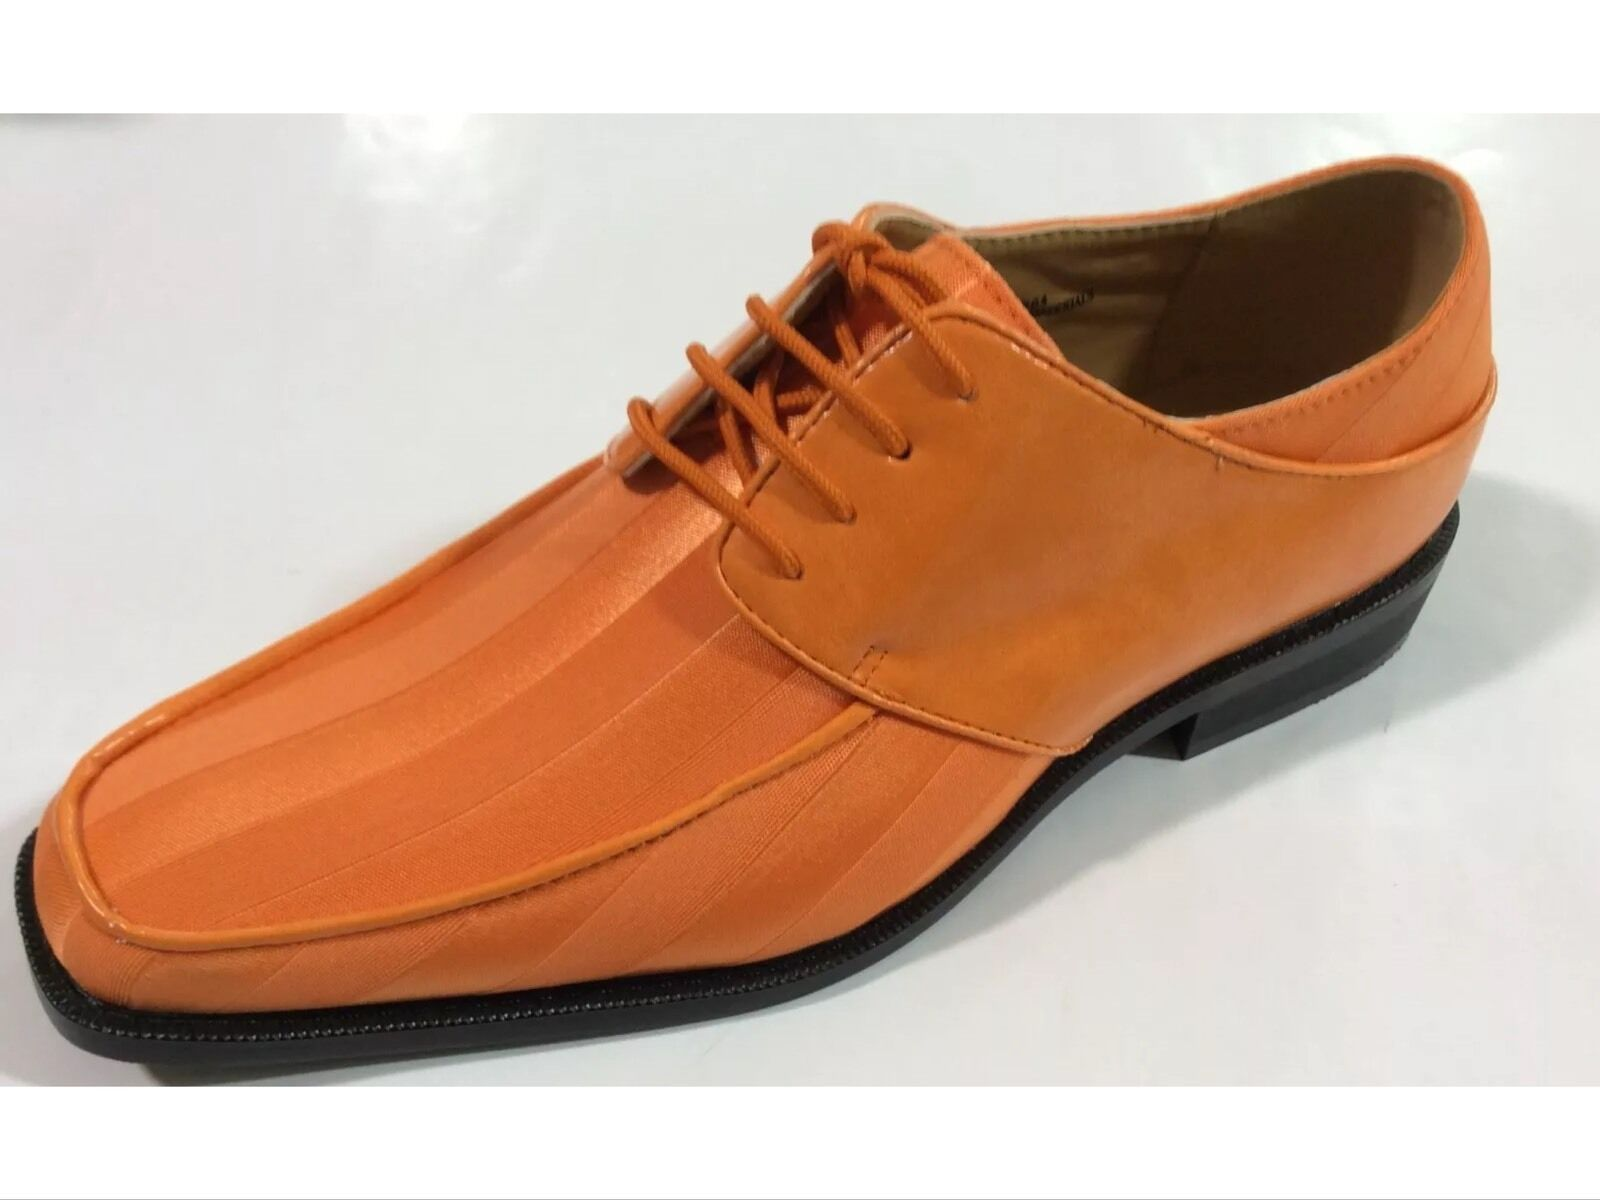 Mens Dress shoes Expressions Satin Shiny Pumpkin Formal Oxford New with Box